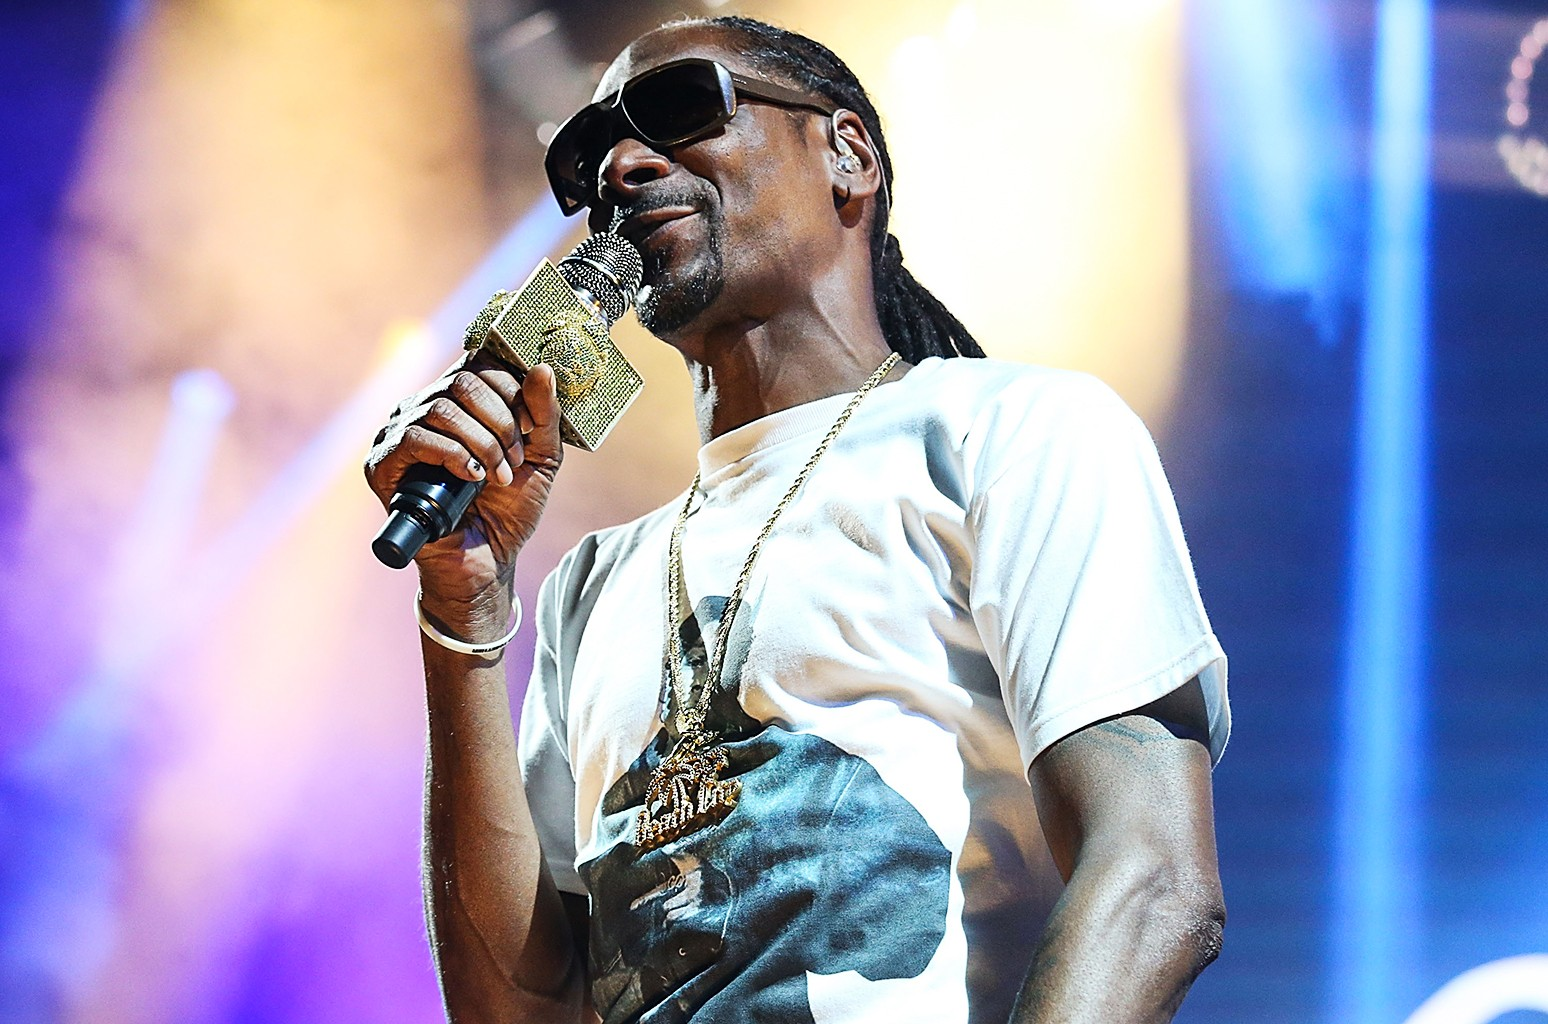 Snoop Dogg performs at the Austin360 Amphitheater on Aug. 21, 2016 in Austin, Texas.